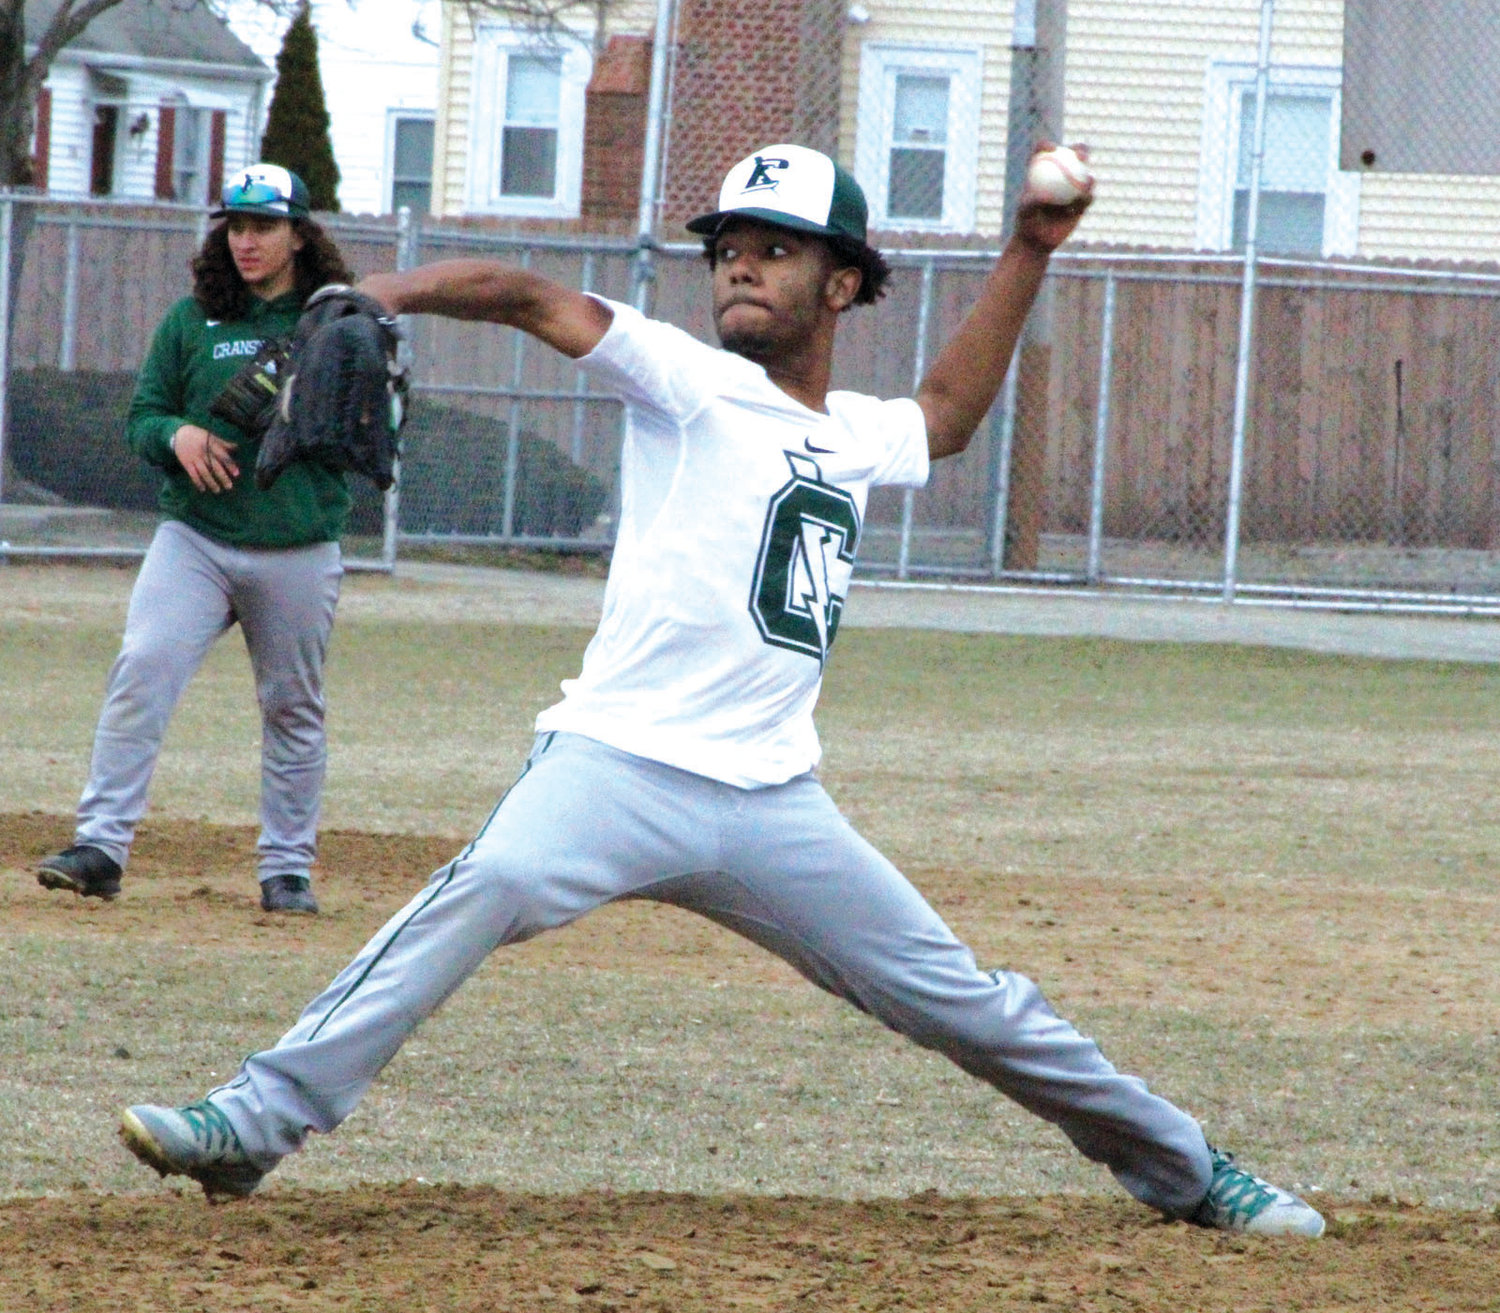 ON THE HILL: East pitcher Jorge Pizarro delivers in a recent scrimmage.